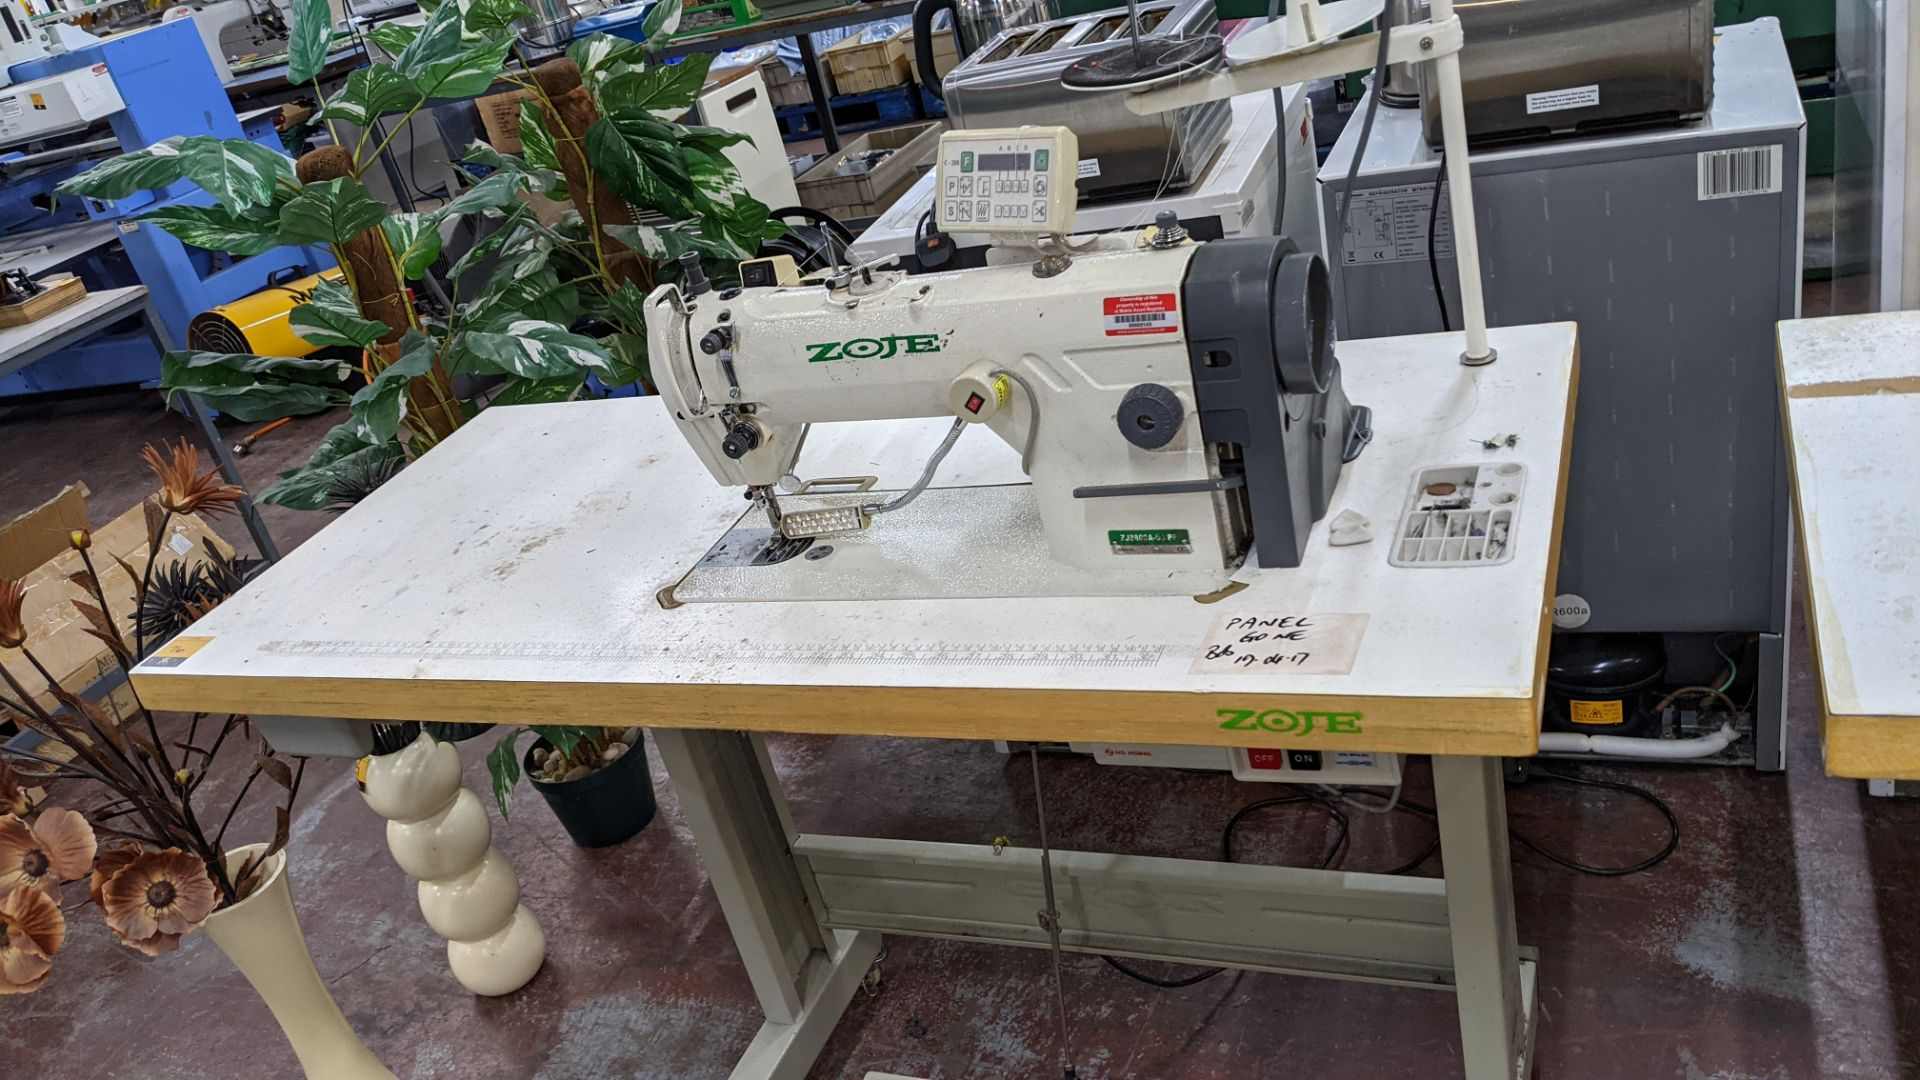 Zoje model ZJ8800A-D3/PF sewing machine with model C-200 digital controller - Image 2 of 15